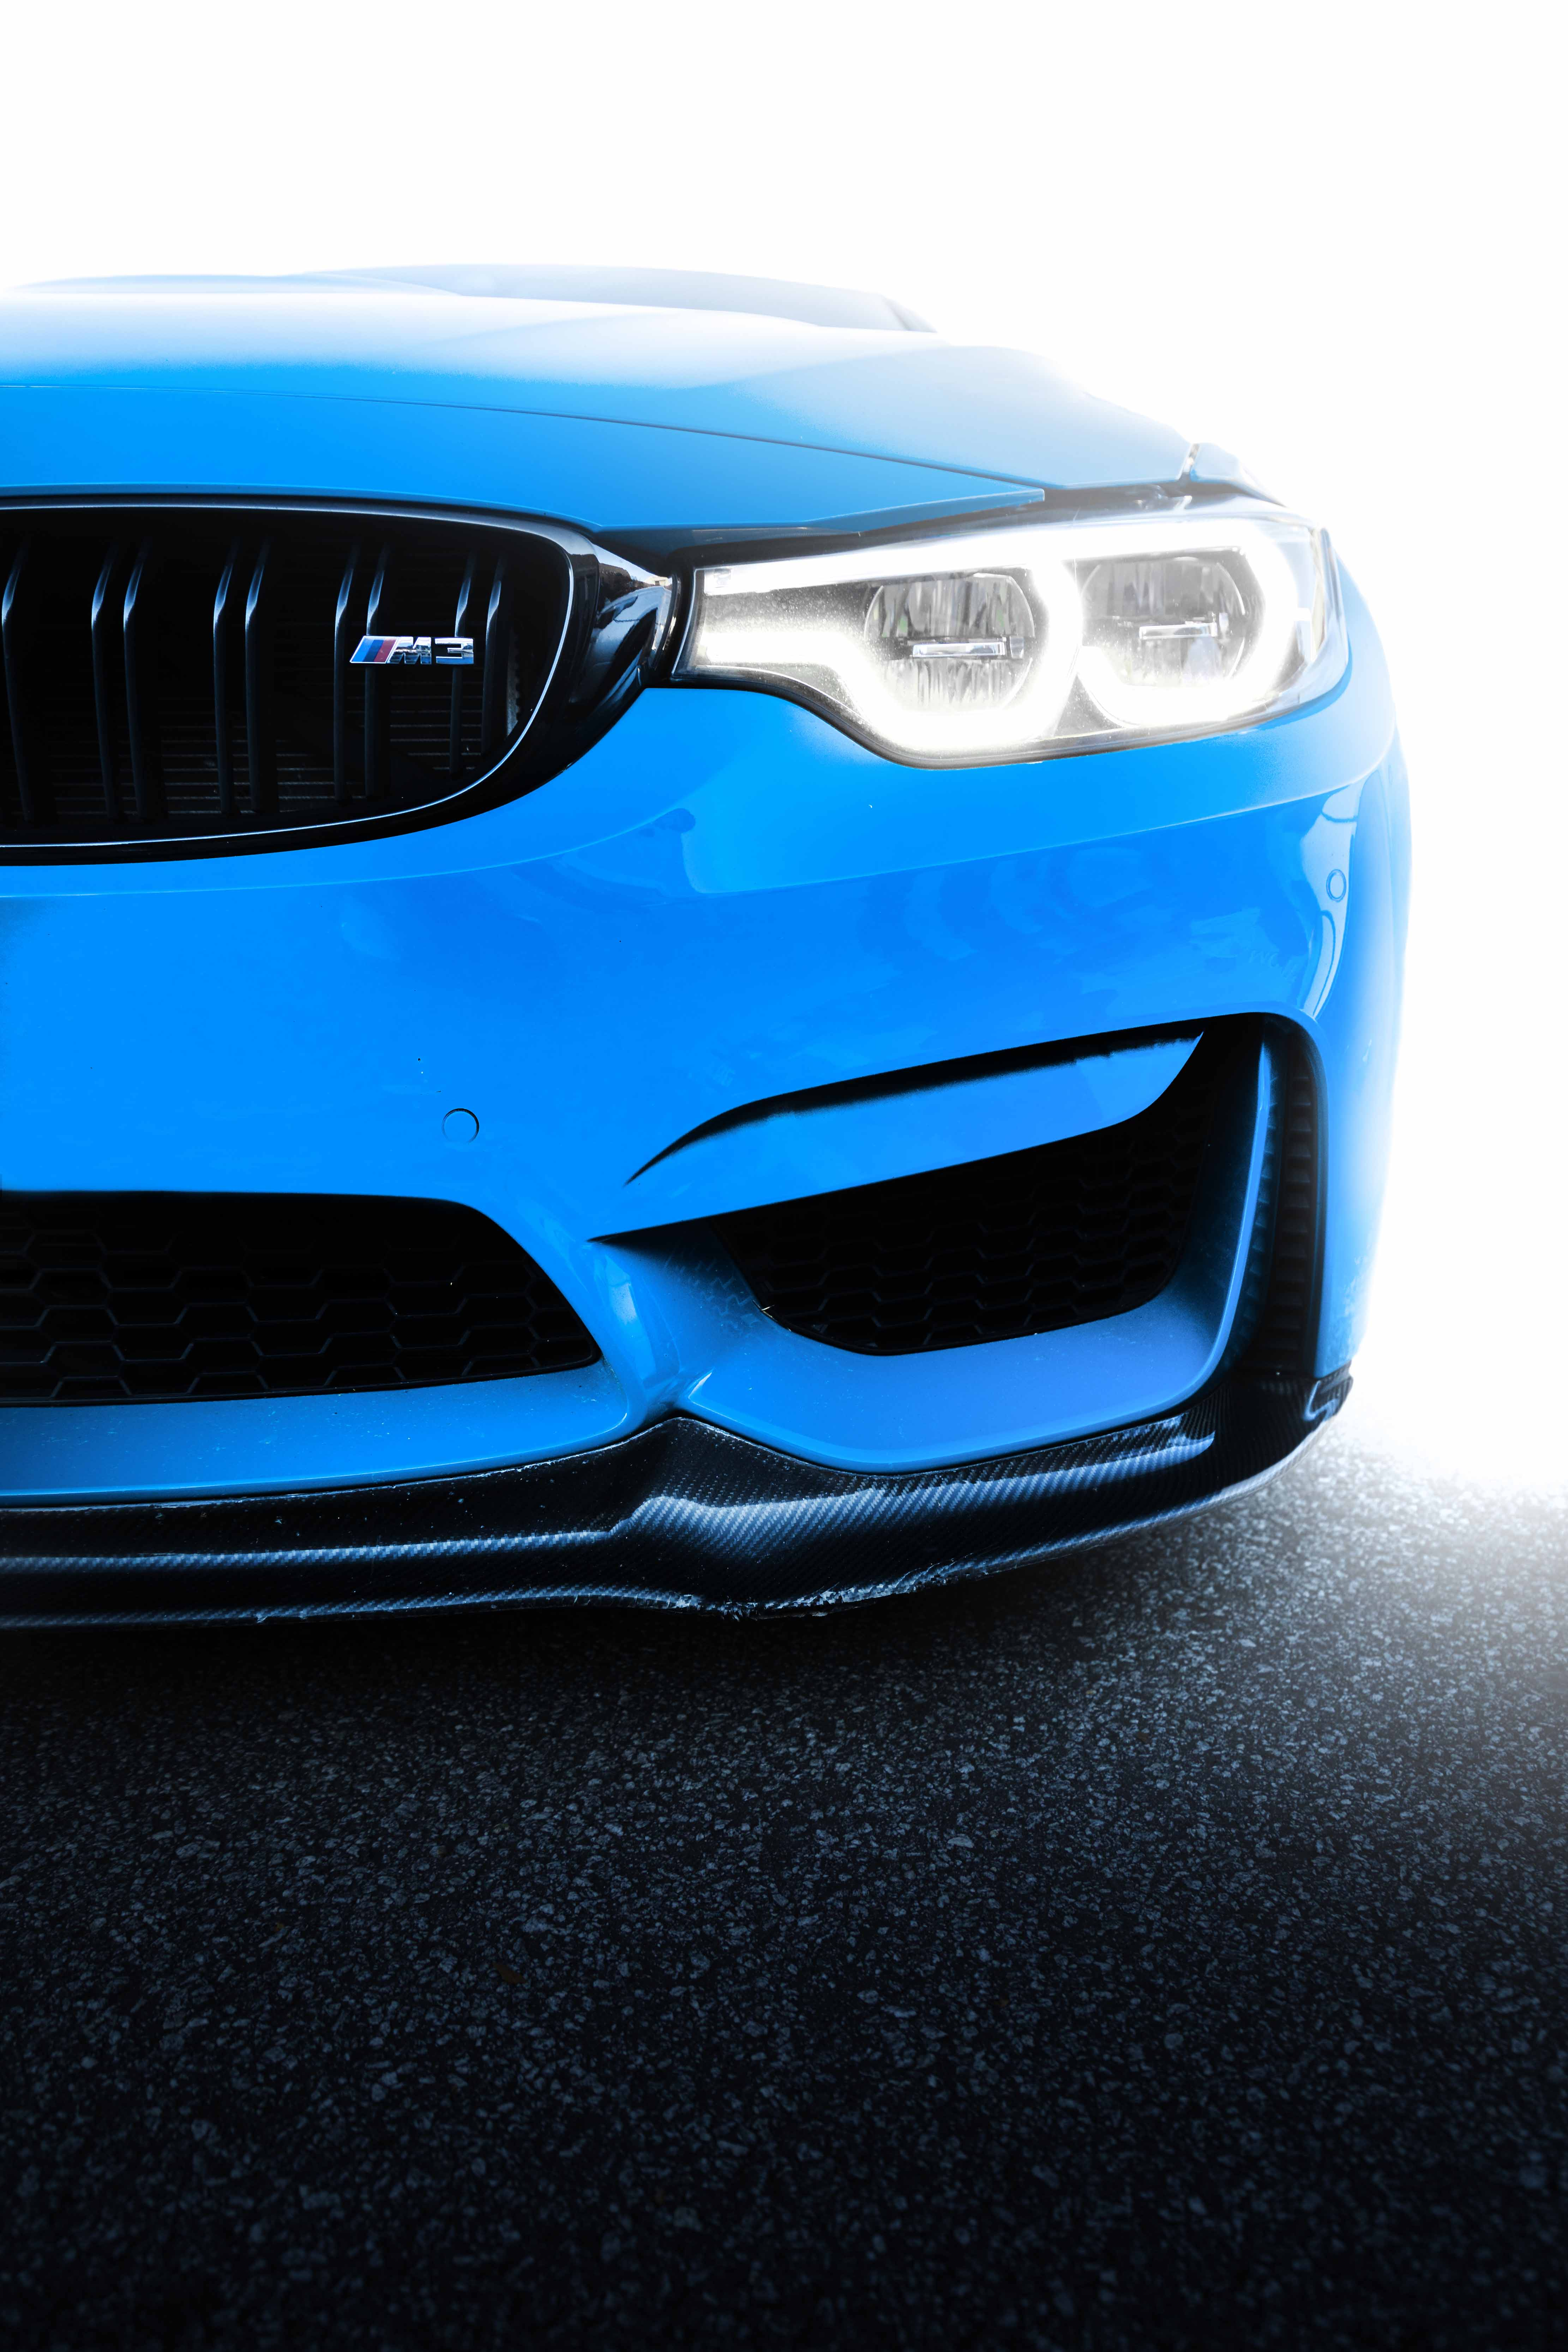 Blue BMW M3 with headlights on